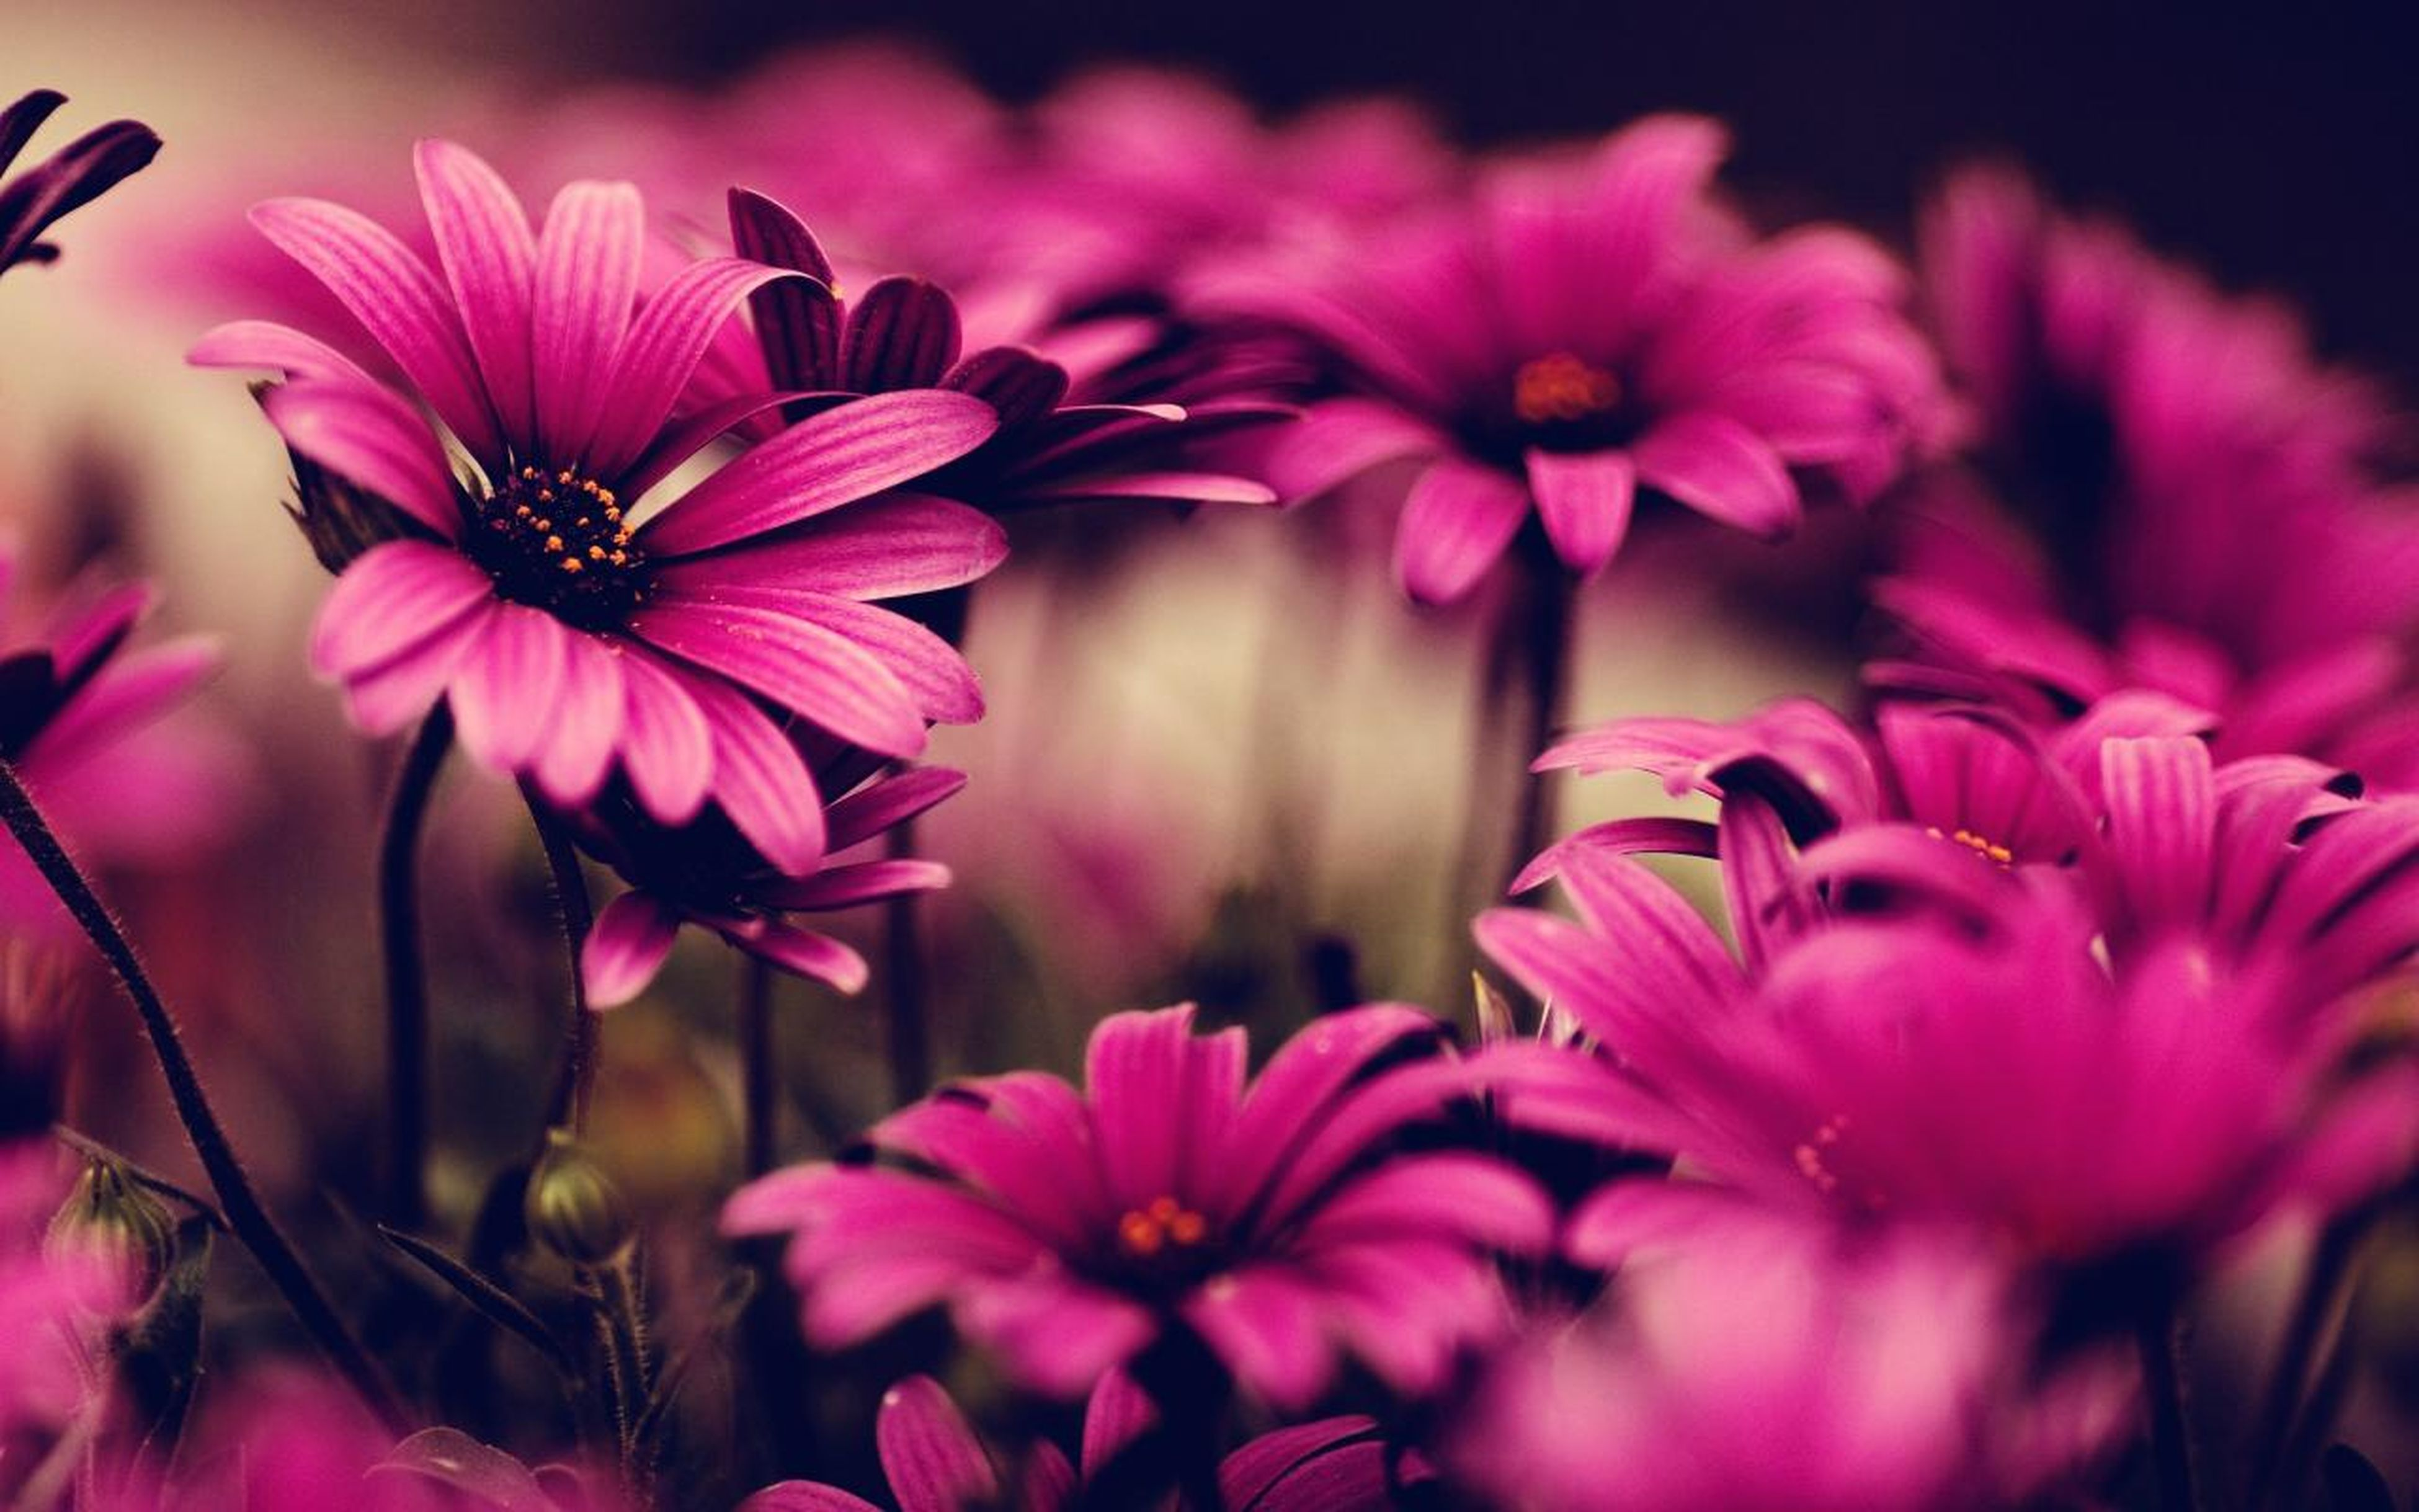 flower, freshness, petal, fragility, flower head, pink color, growth, beauty in nature, focus on foreground, close-up, blooming, nature, plant, in bloom, stem, purple, selective focus, pink, pollen, blossom